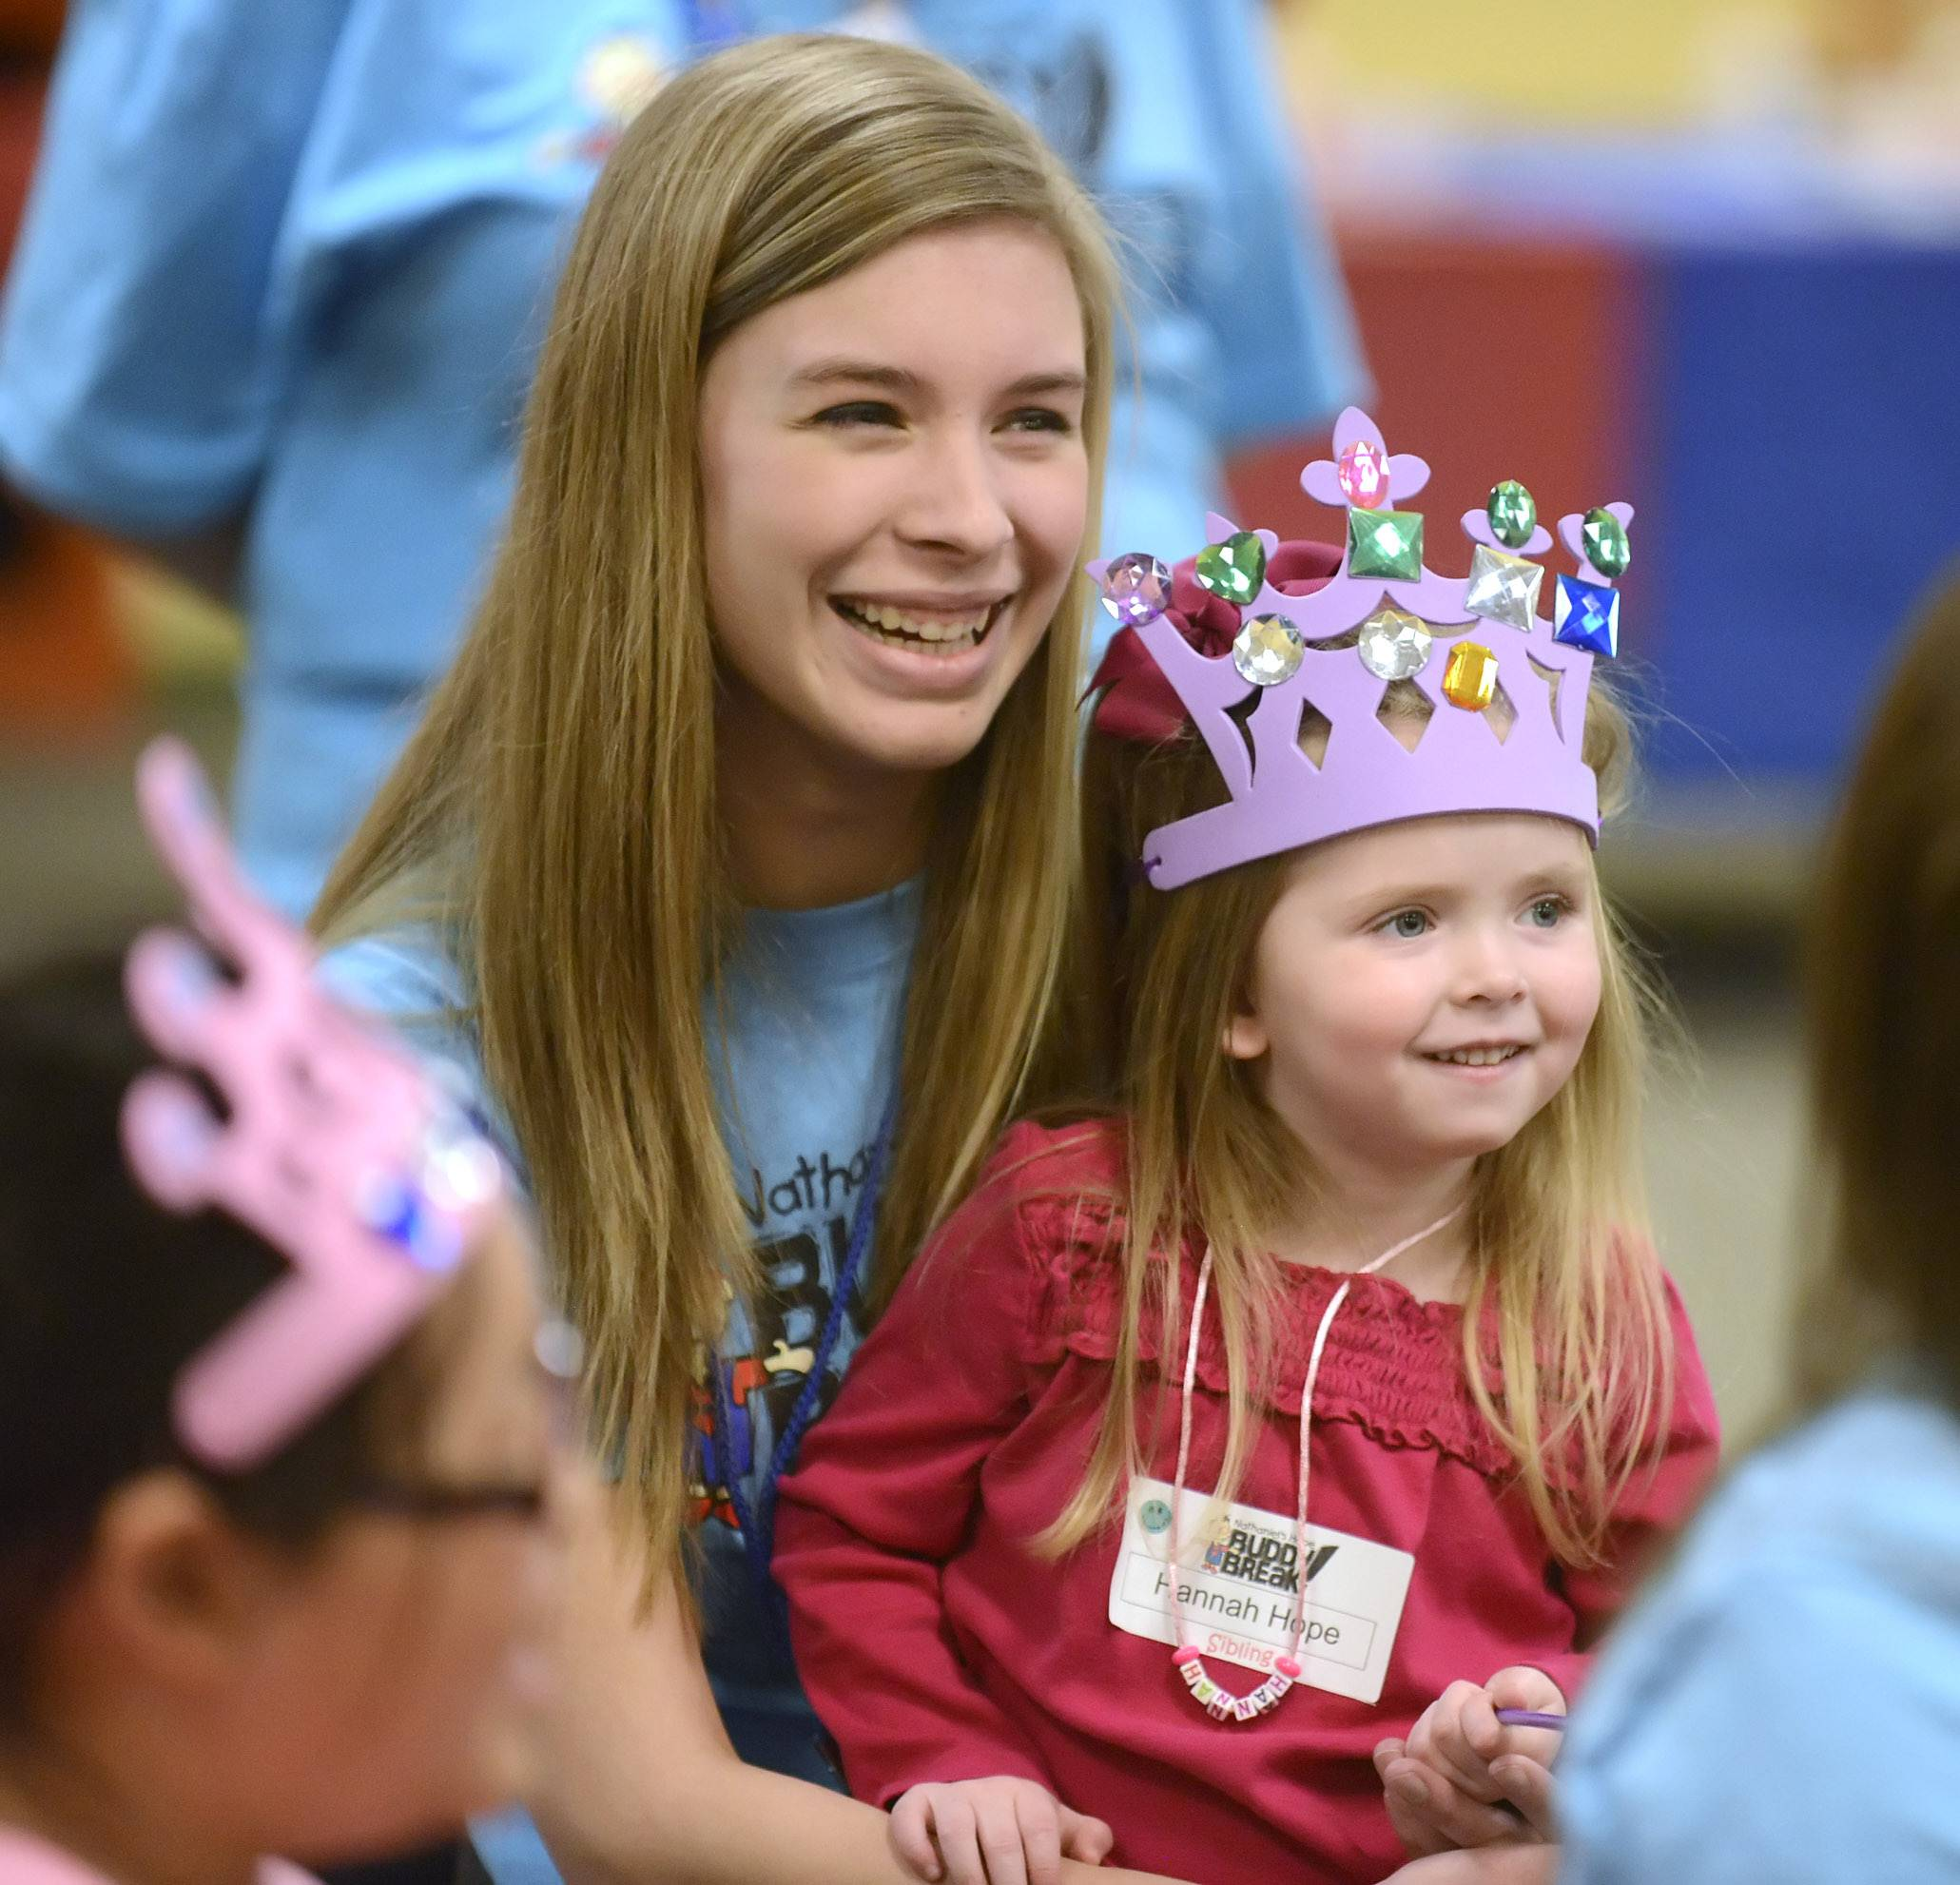 Alena Christopherson, 17, of Aurora holds Hannah Hope, 4, of St. Charles in her lap as they watch a magic show at the second Nathaniel's Hope Buddy Break session held at First Baptist Church in Geneva. The church is one of several in the Chicago area offering the free program that provides respite for families of children with special needs.